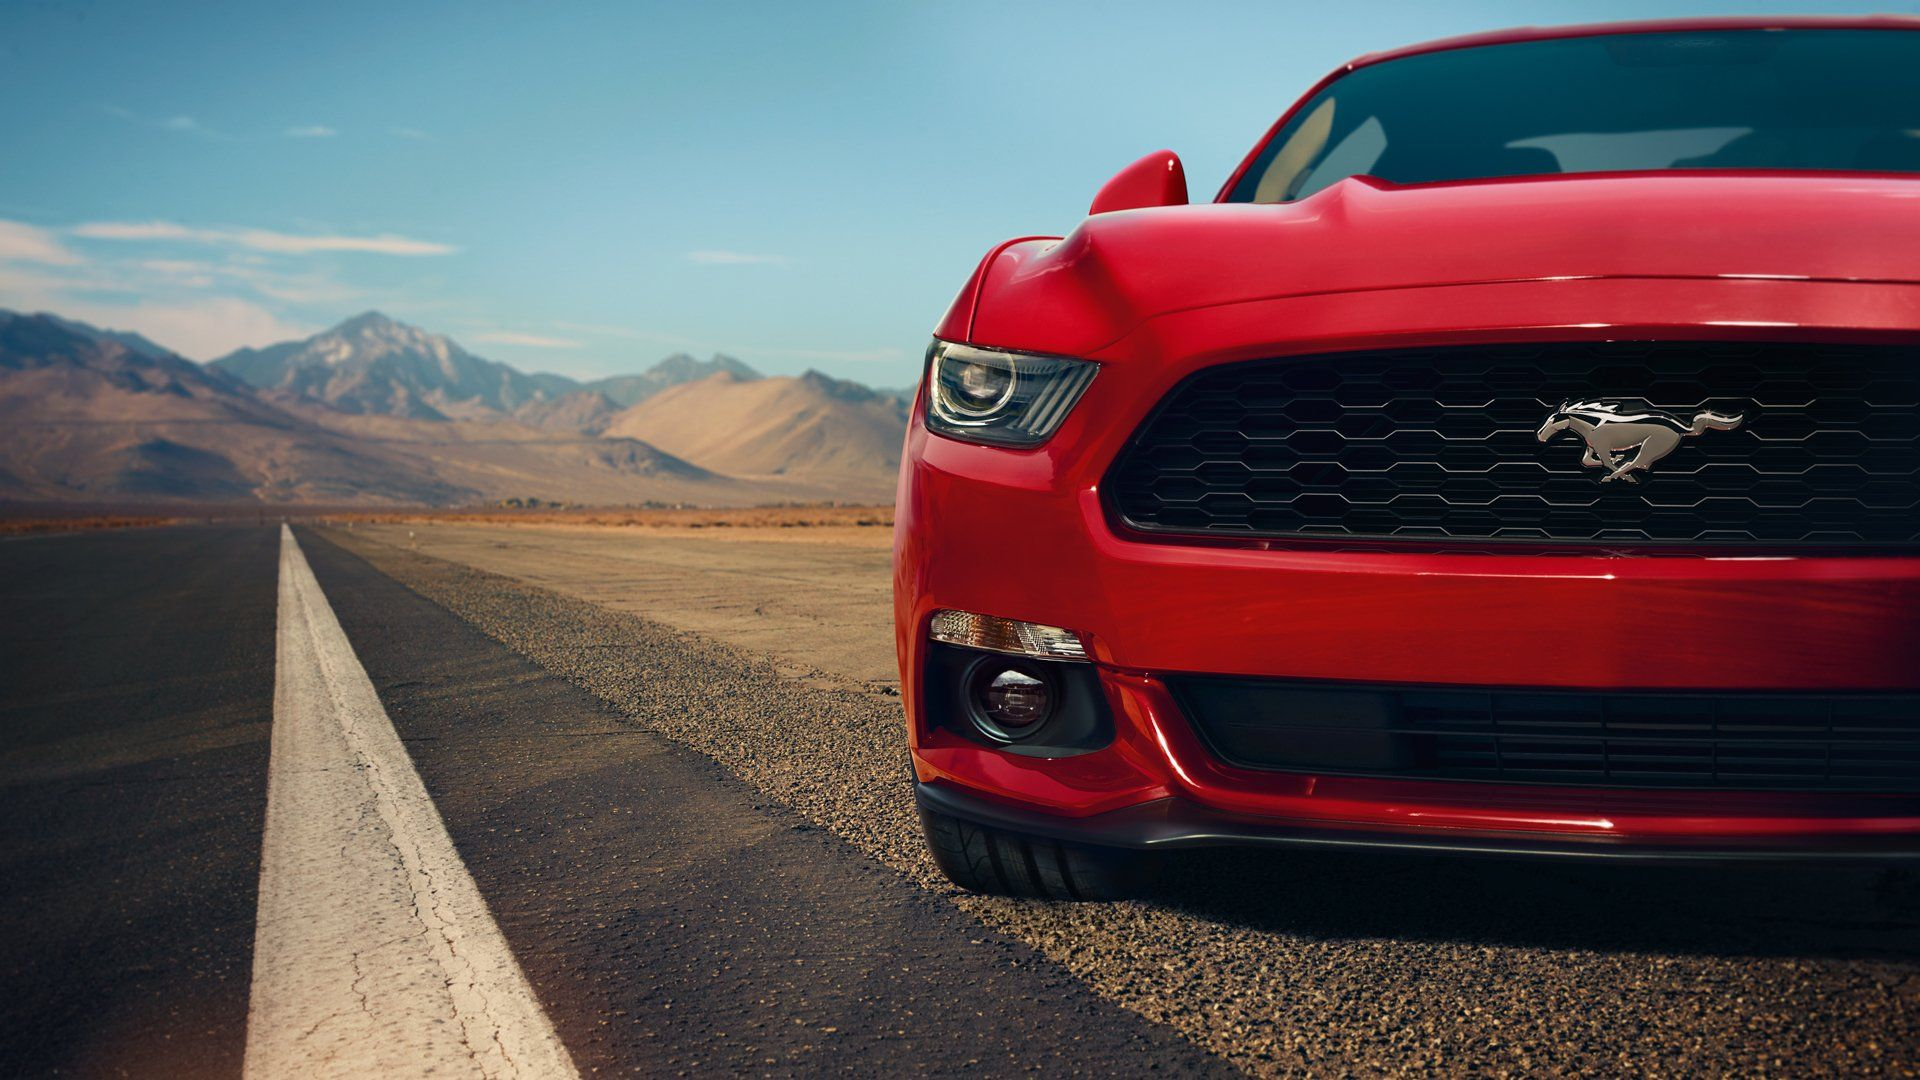 2016 Ford Mustang Gt Wallpapers Hd Ford Mustang Wallpaper